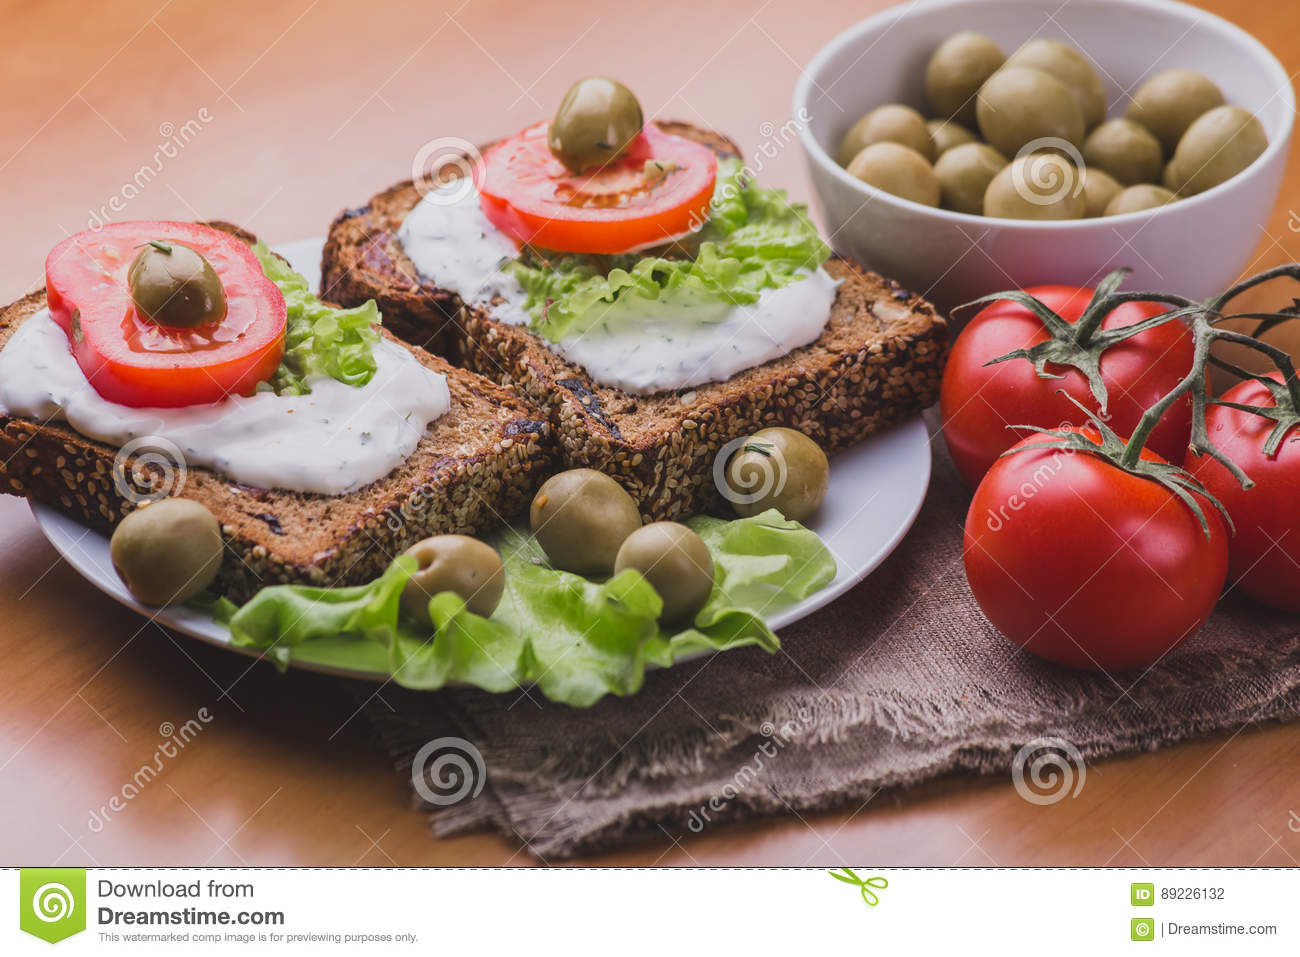 Vegetarian Sandwiches of homemade bread with cheese sauce or cream, lettuce